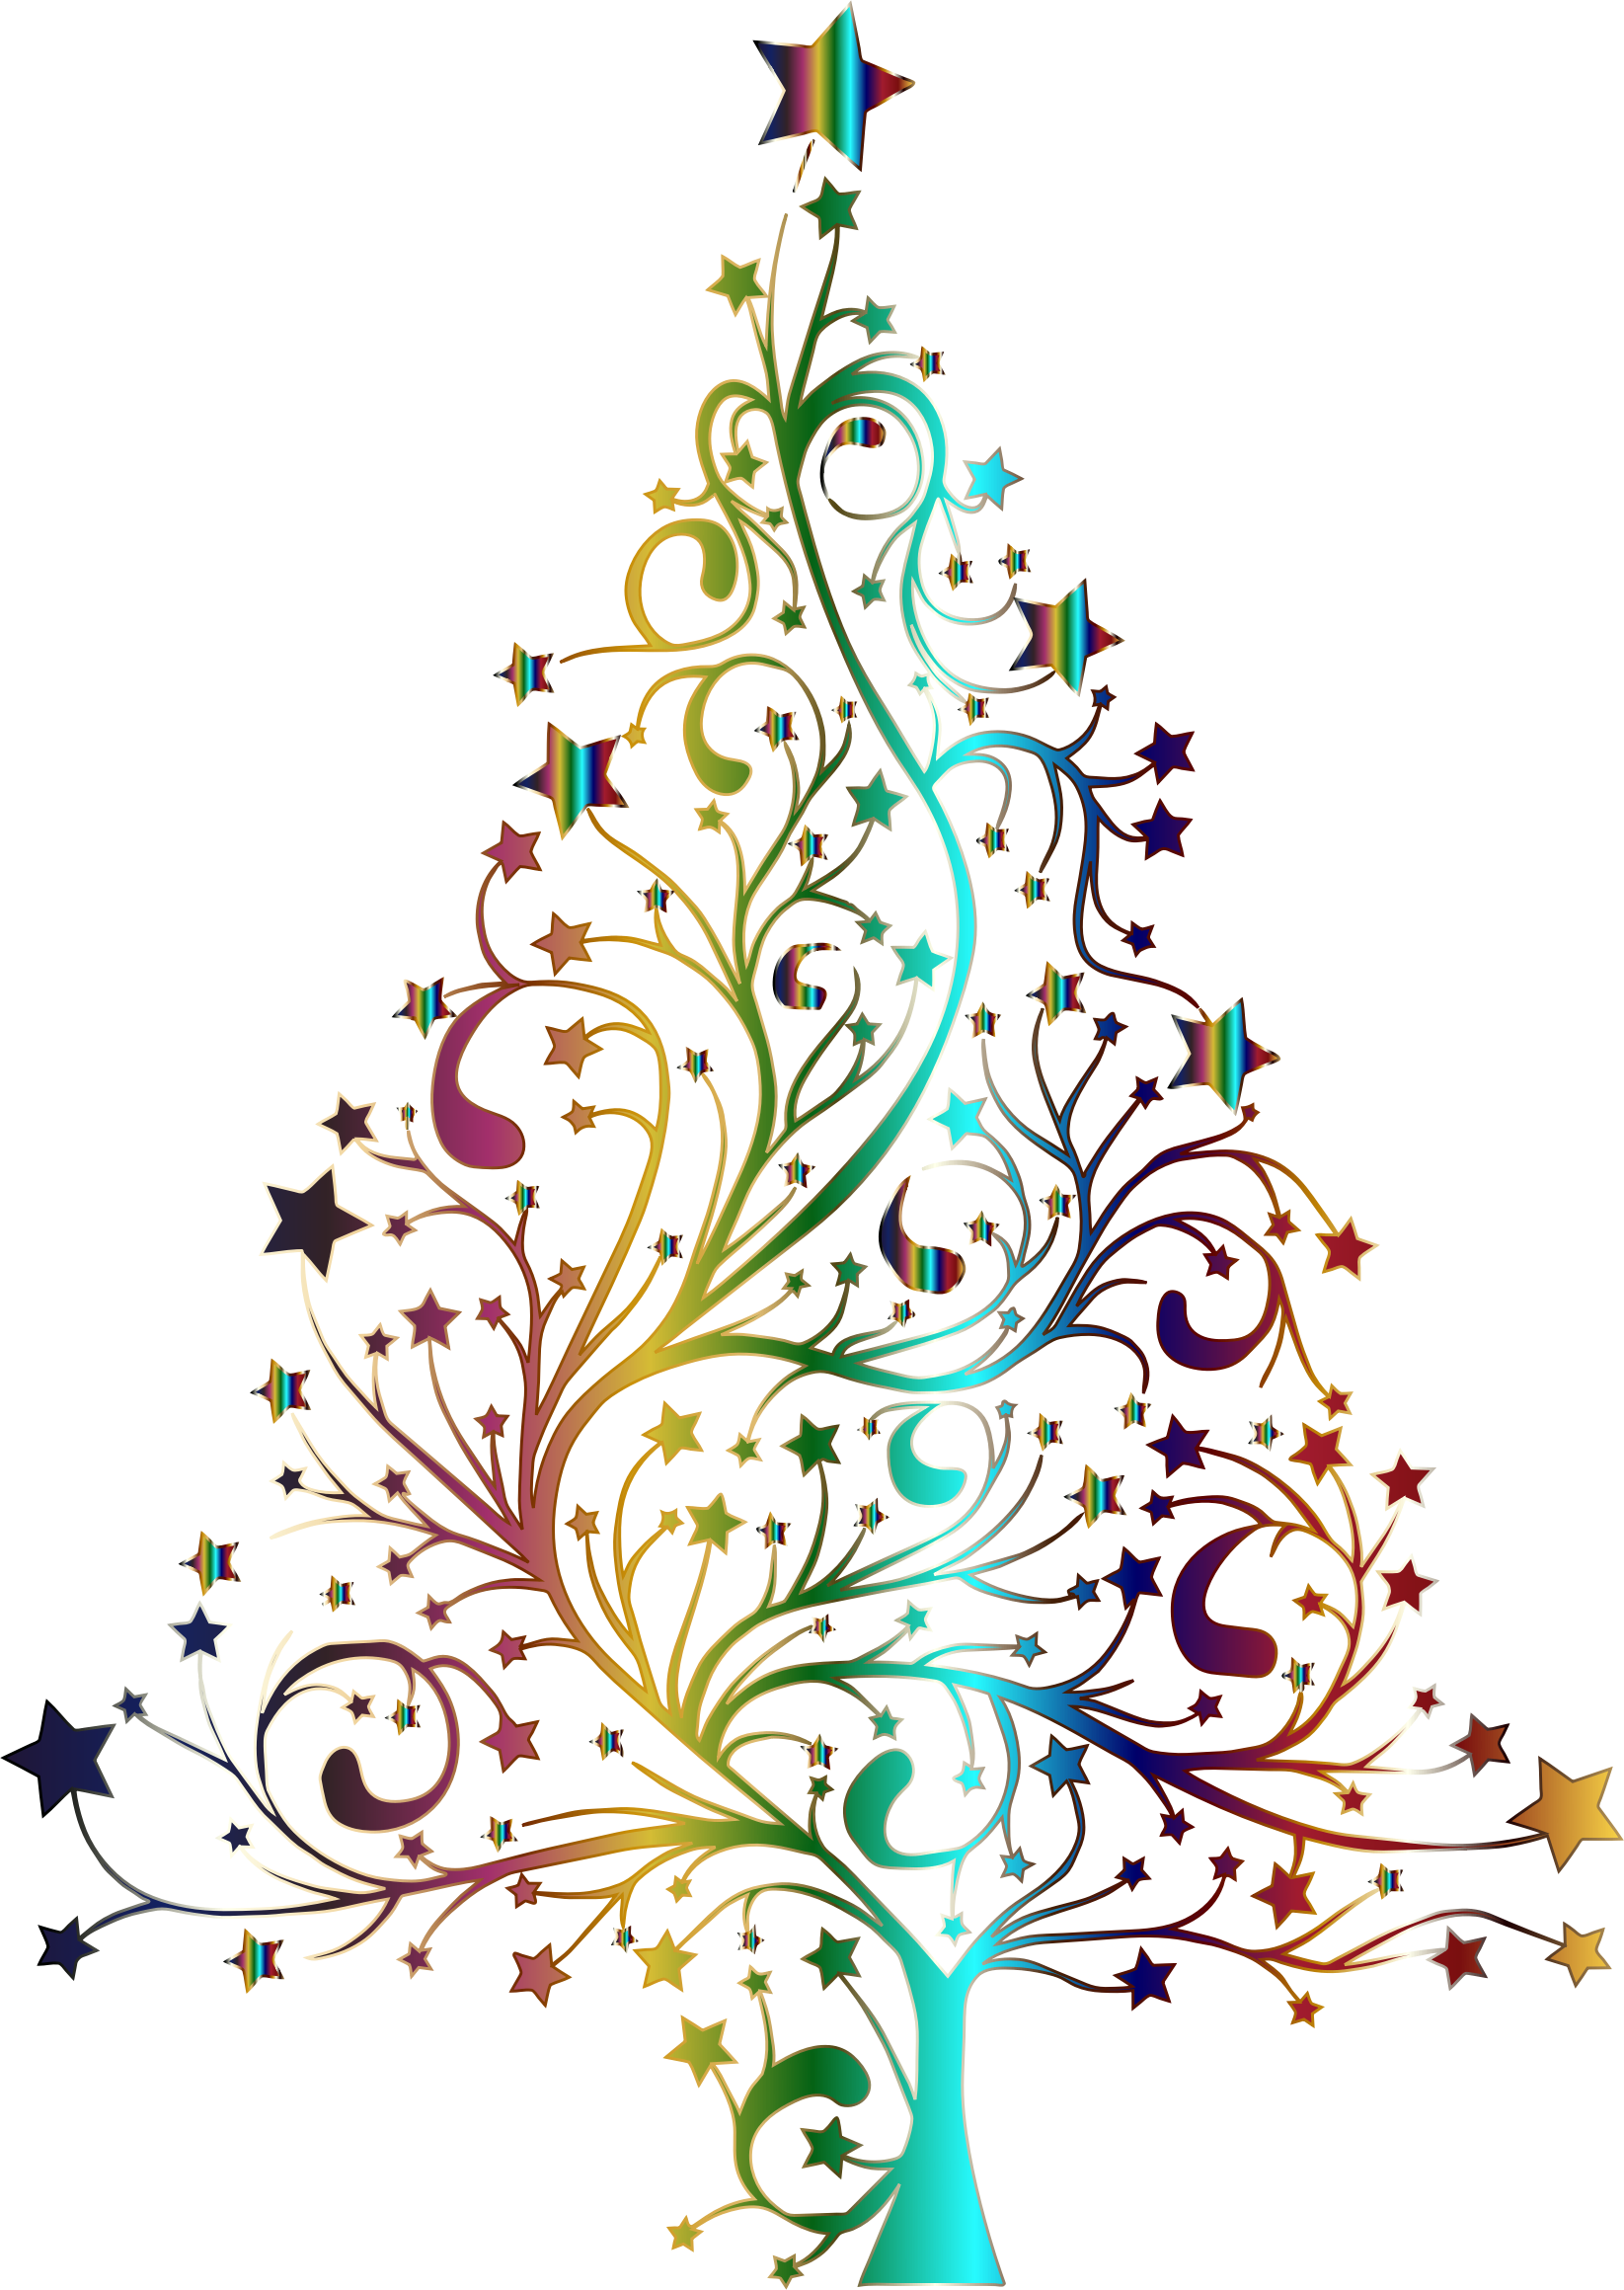 Christmas images free clipart svg library Transparent background png christmas seashell clipart - ClipartFest svg library